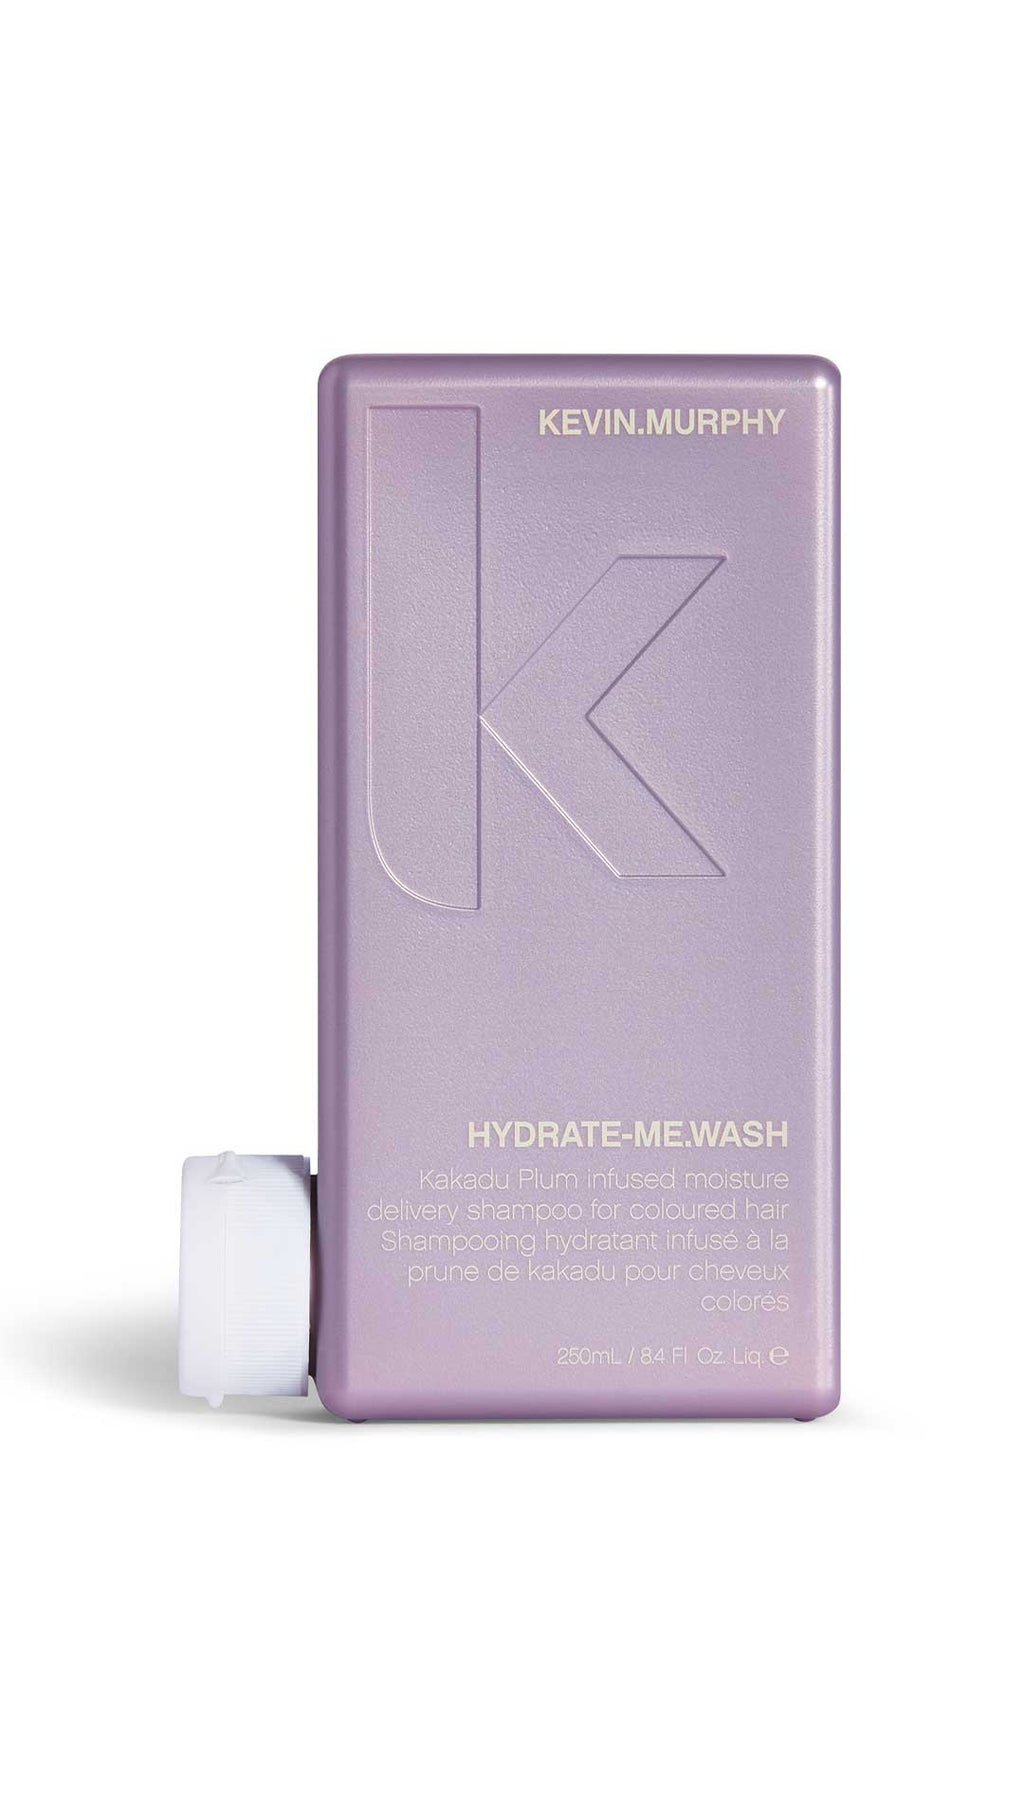 HYDRATE-ME.WASH - KEVIN MURPHY